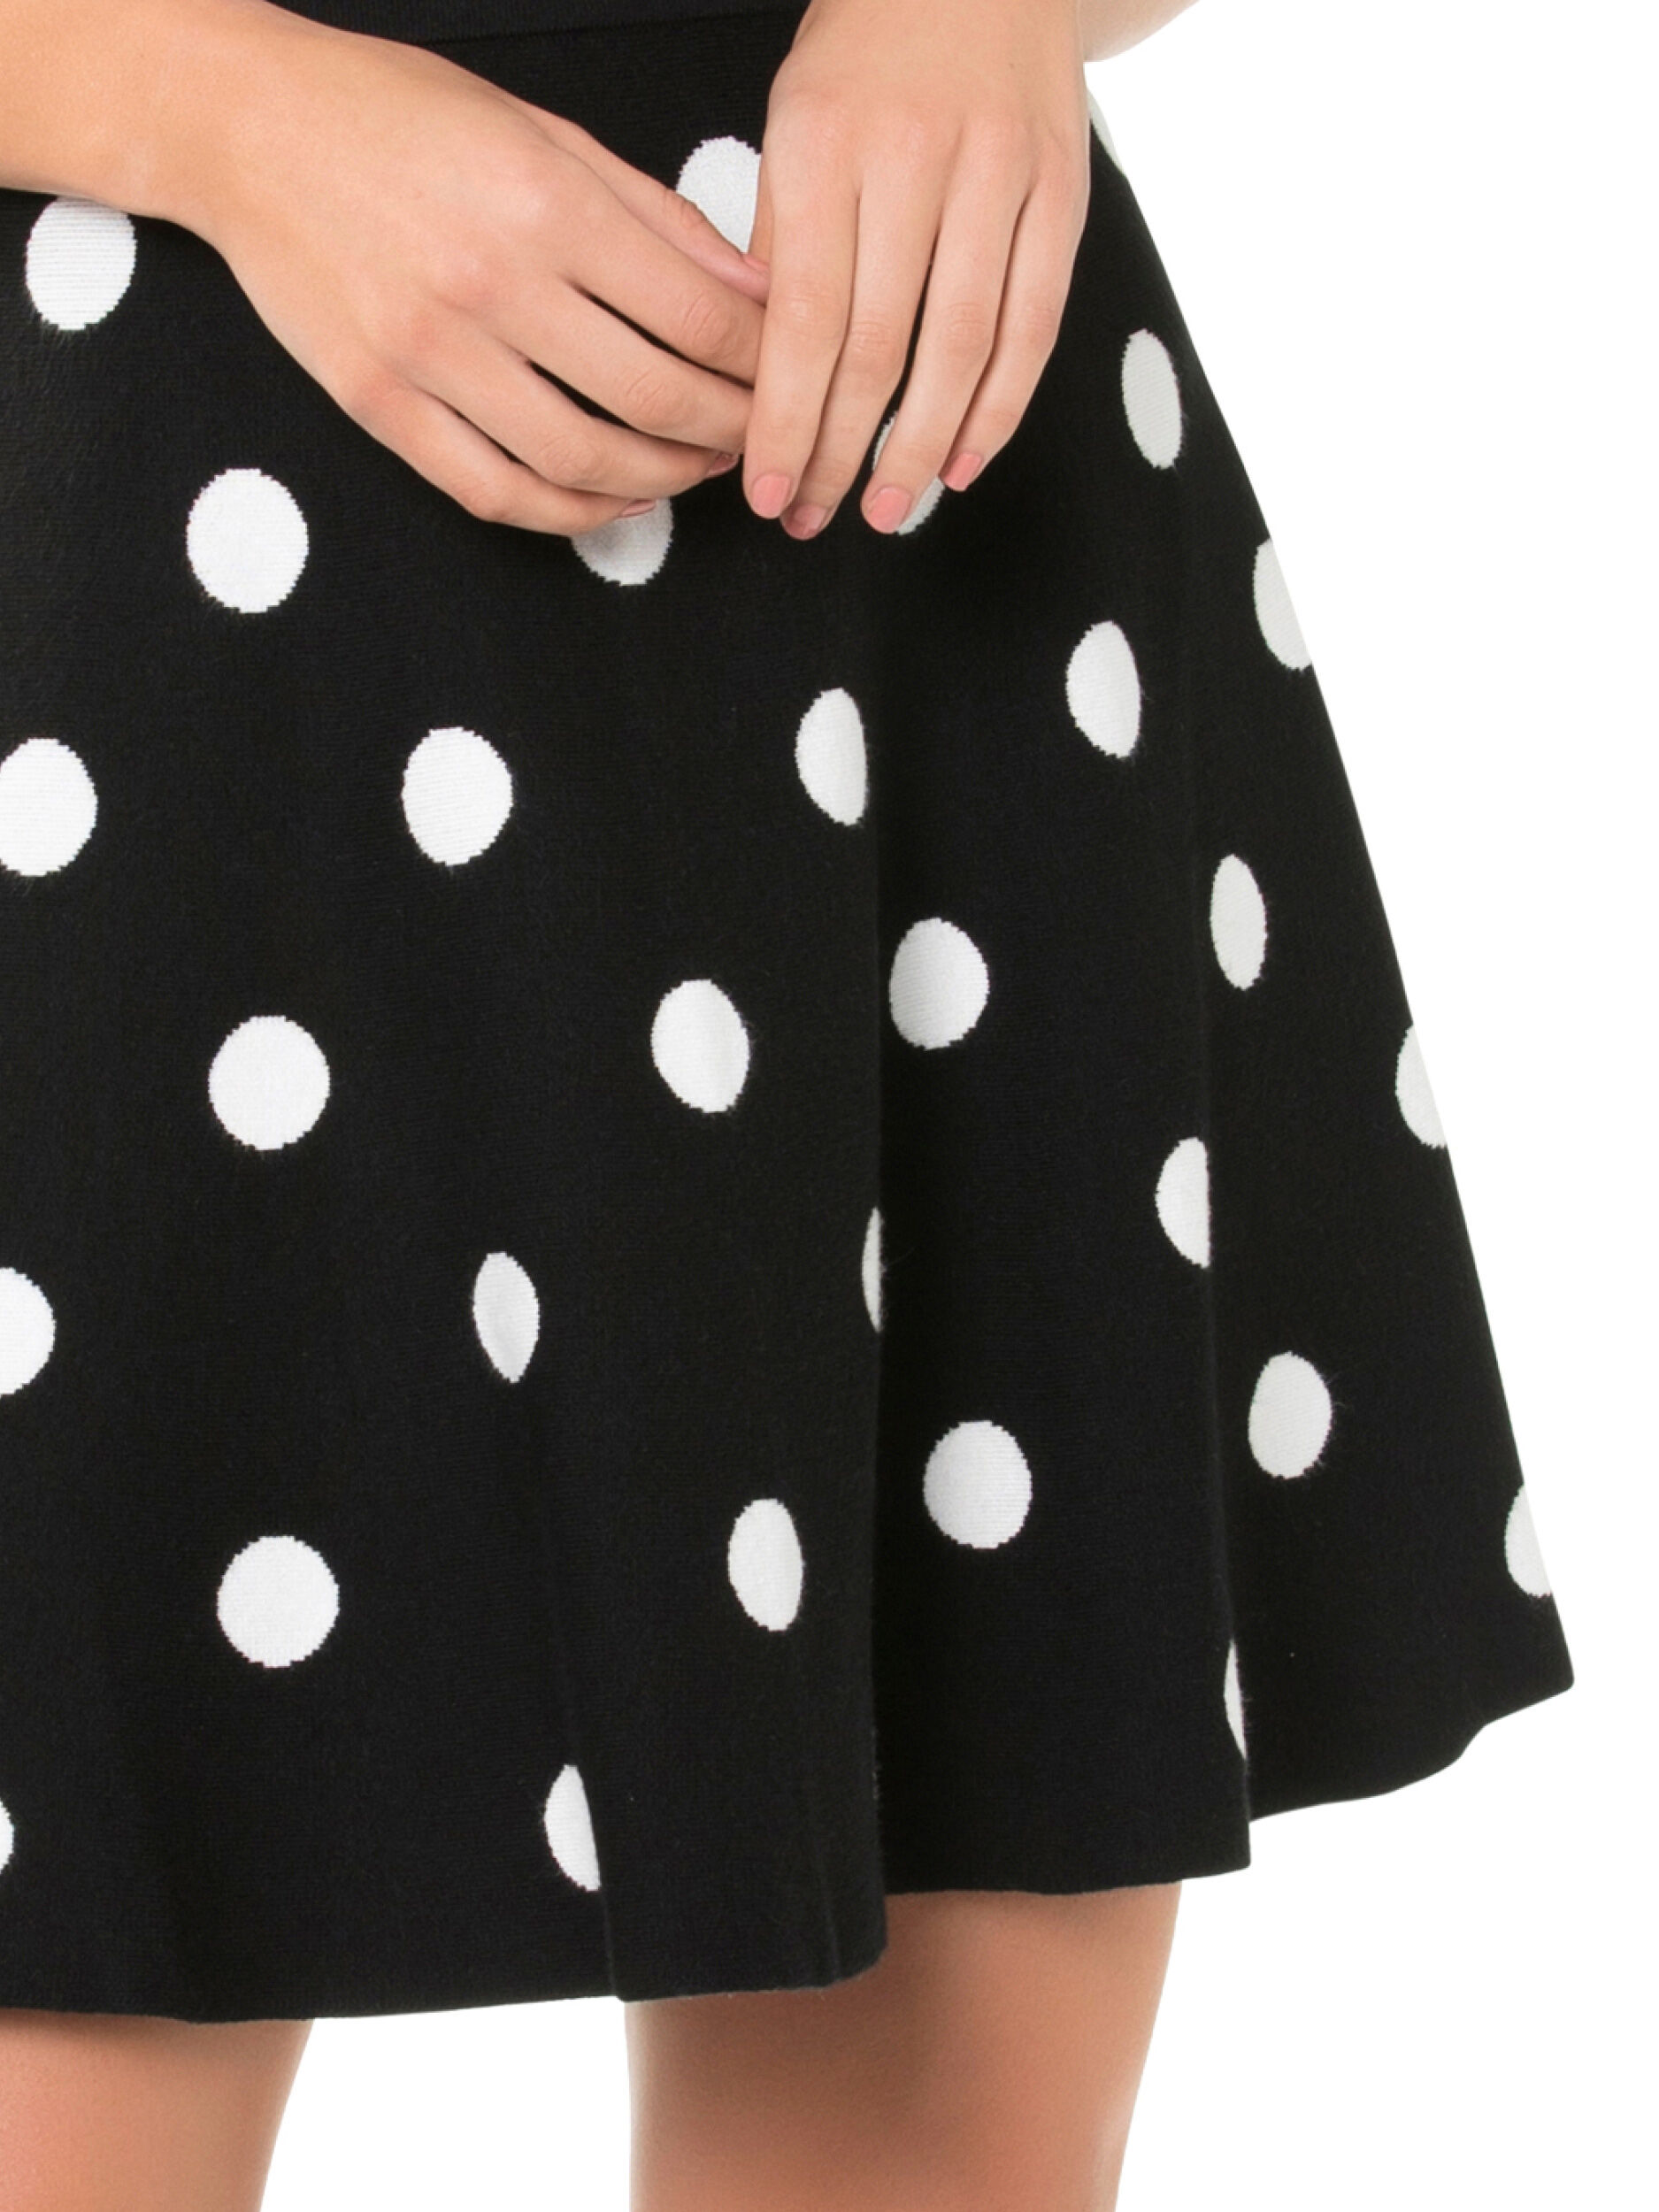 Sally Spot Skirt